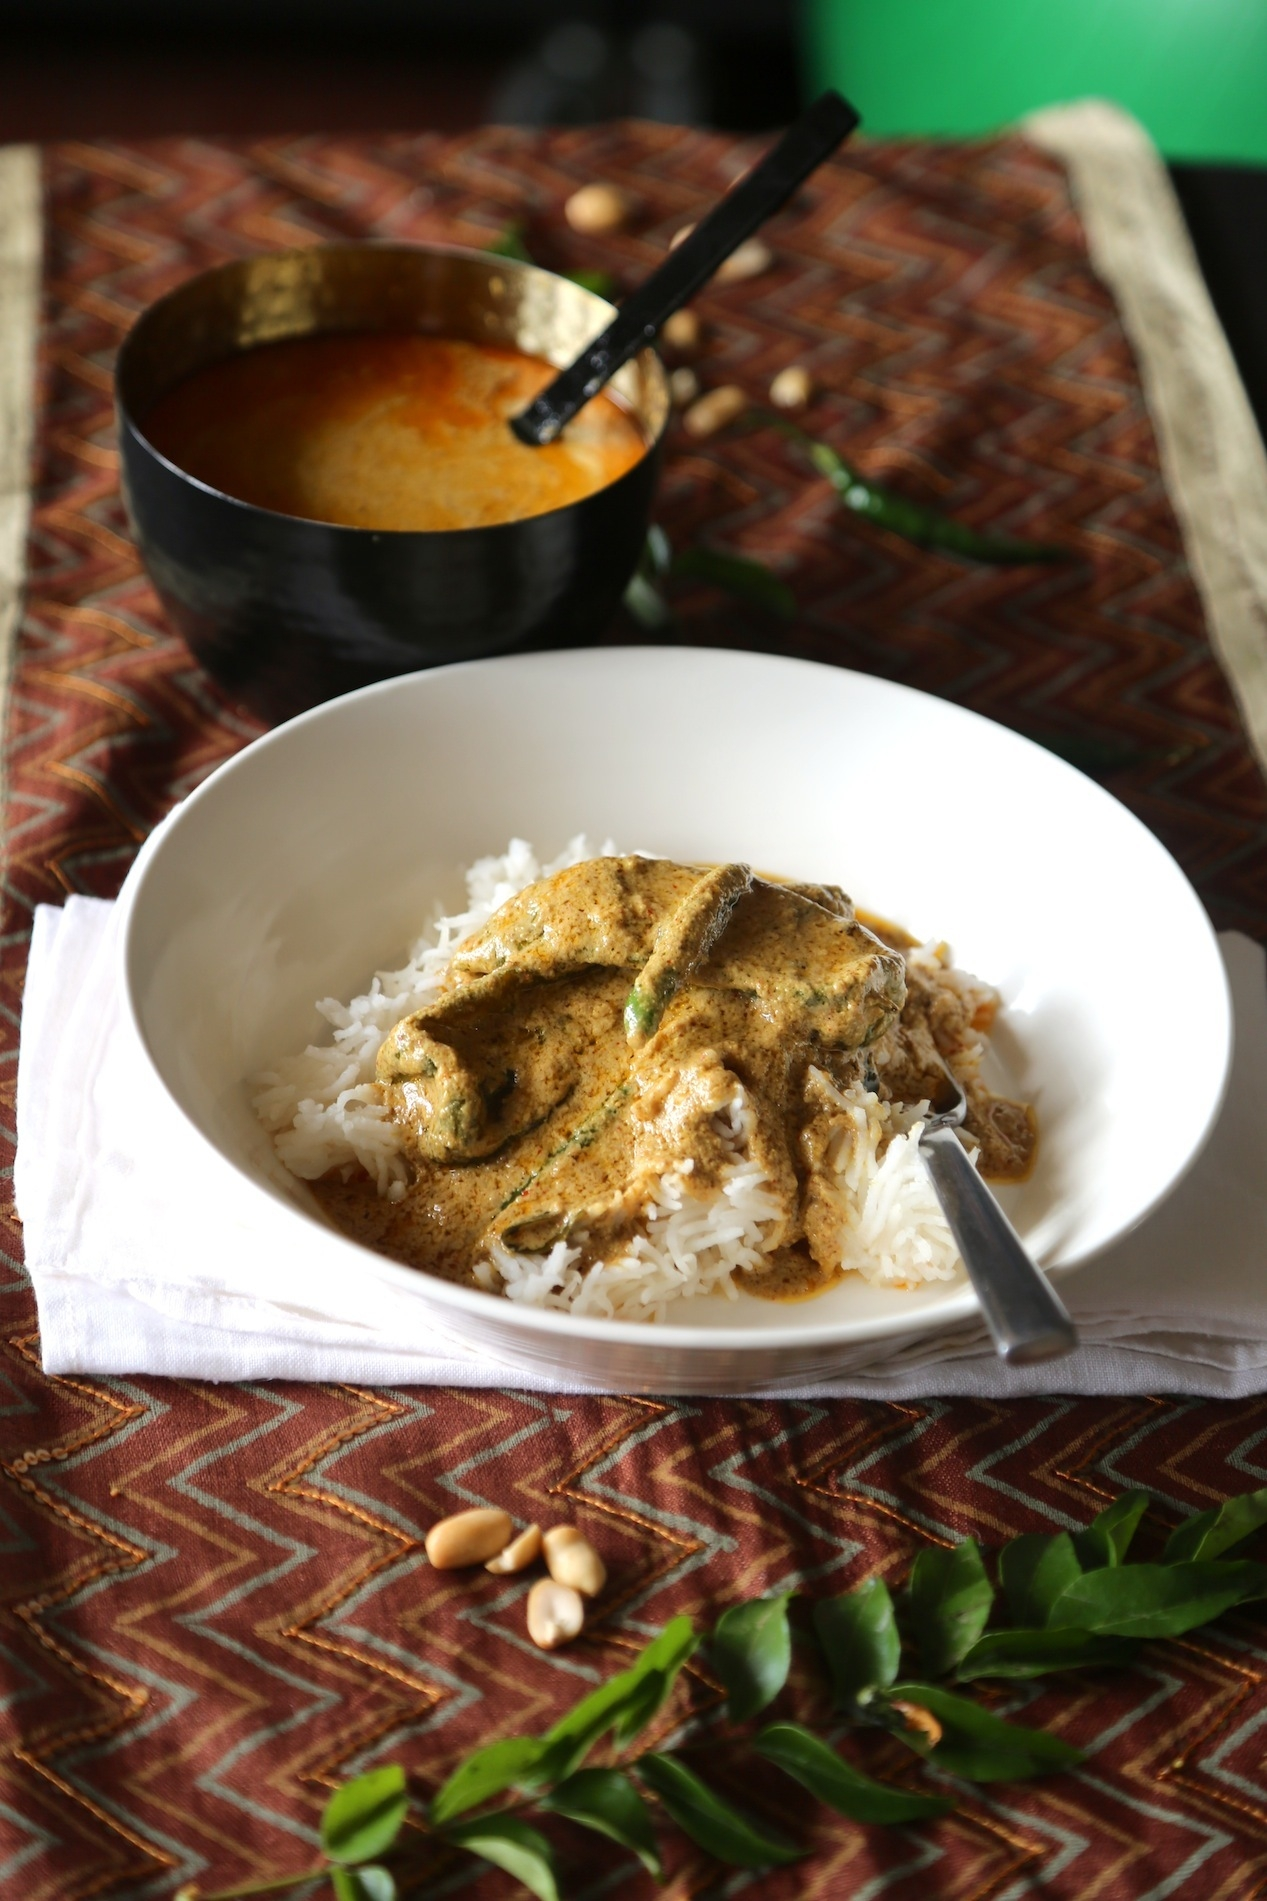 MIRCH KA SALAN- GREEN CHILLIES IN A MIXED NUT AND SEED GRAVY